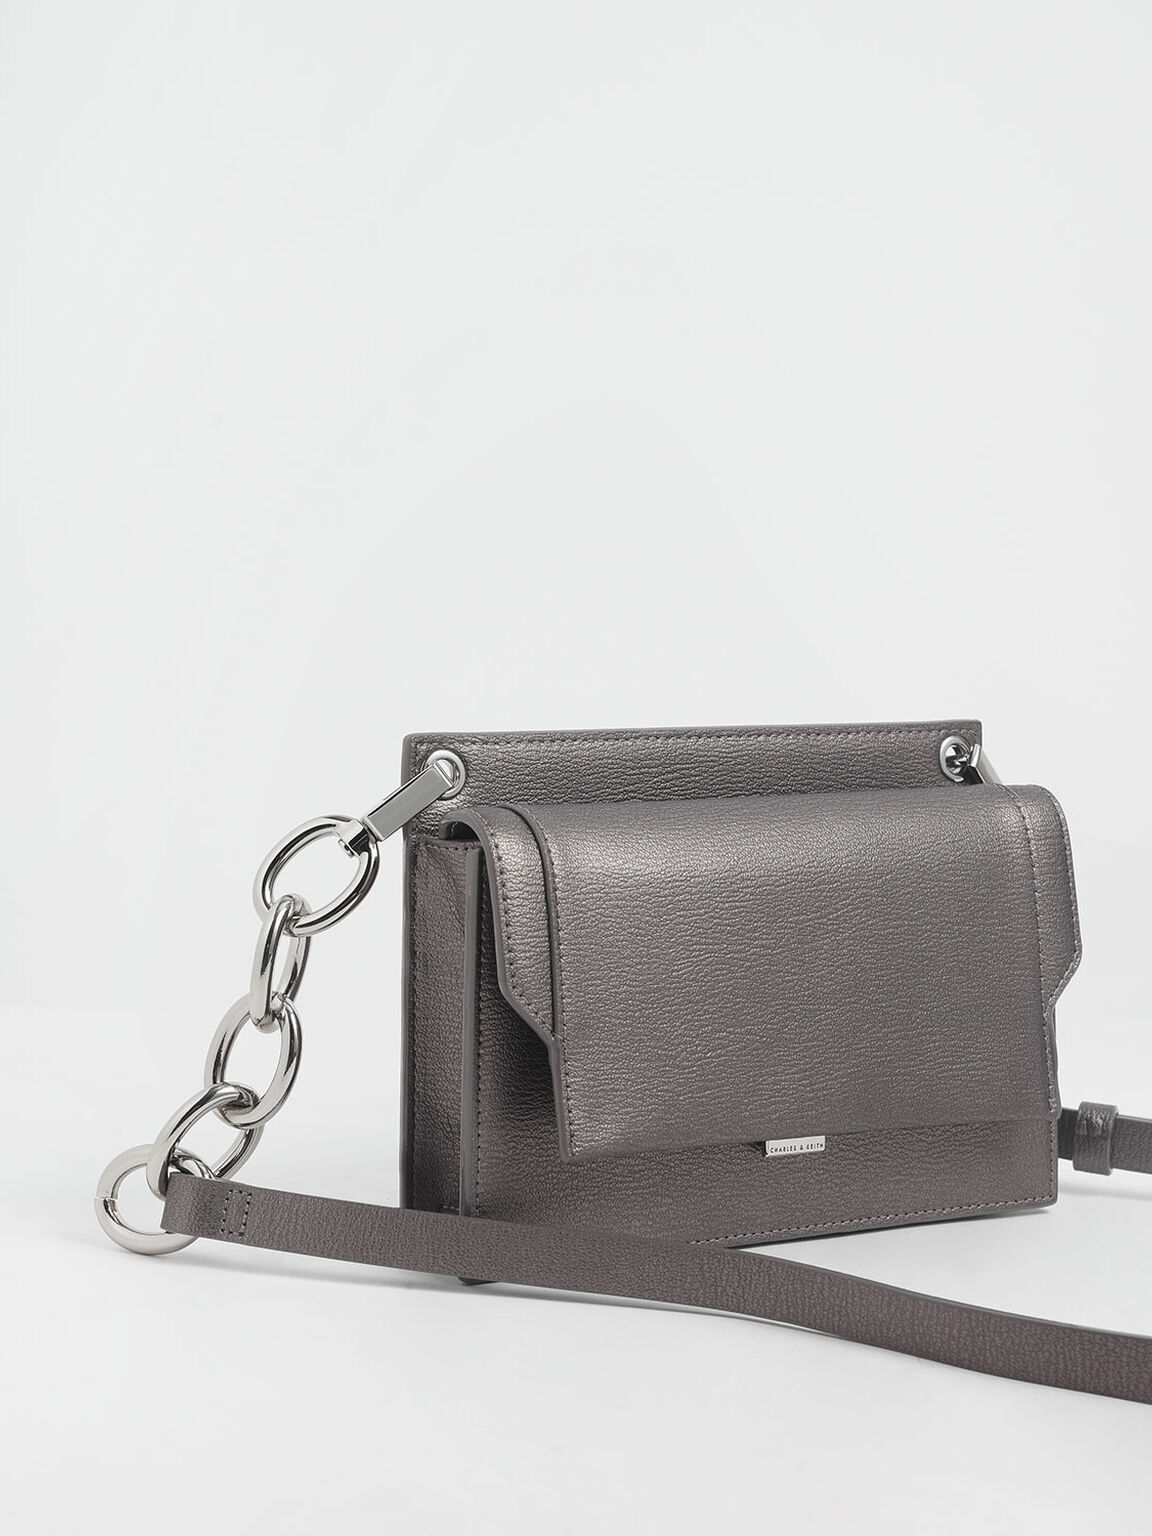 Eyelet Embossed Push Lock Clutch, Pewter, hi-res